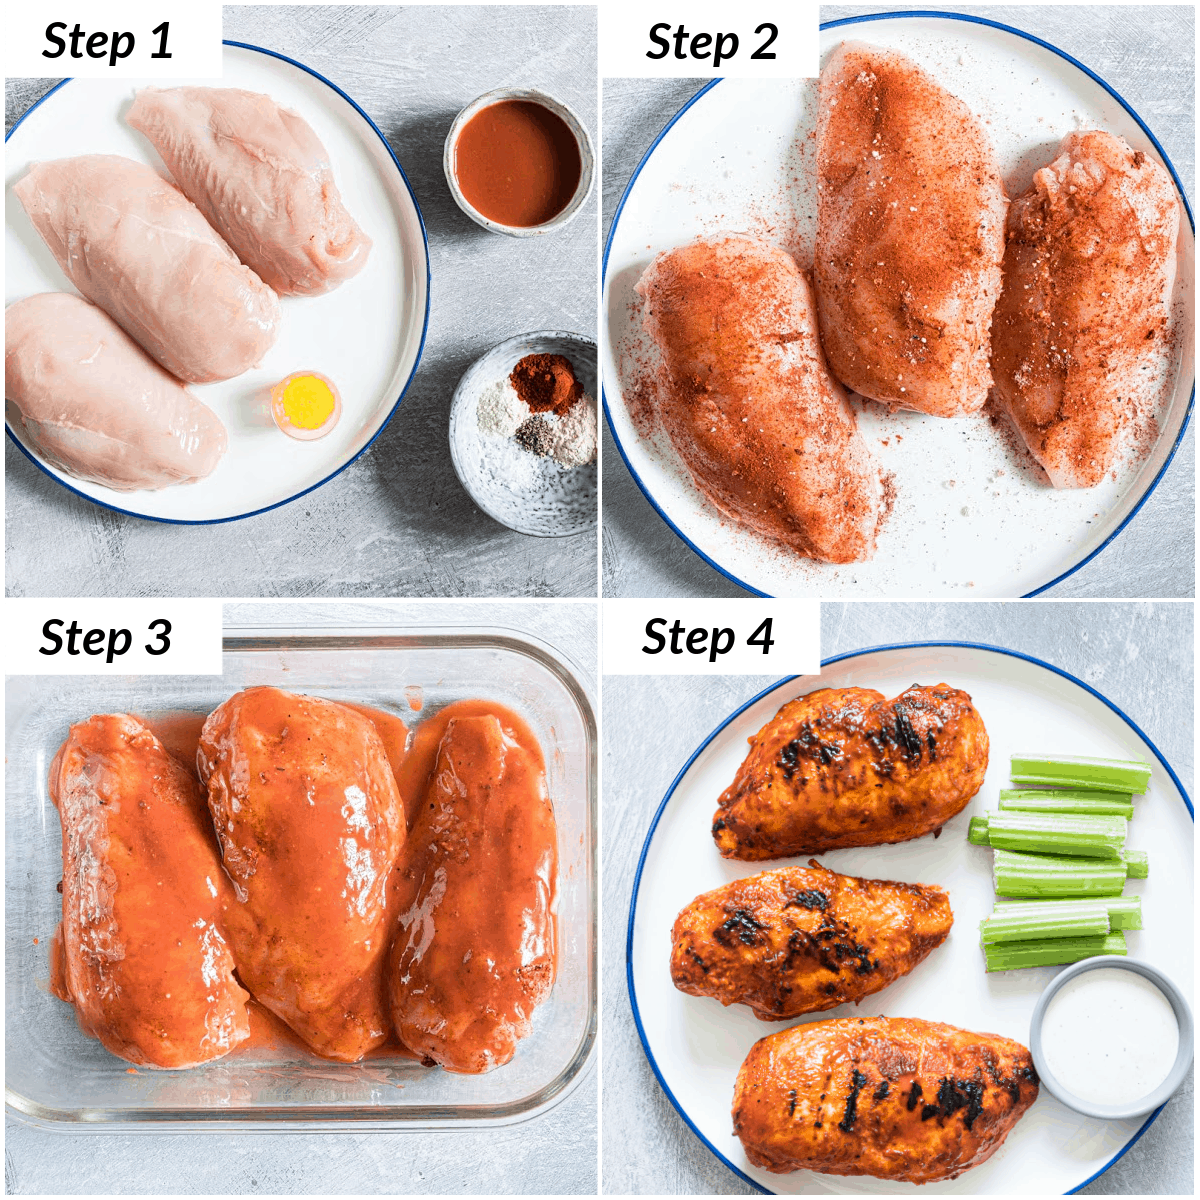 image collage showinfg the steps for making grilled buffalo chicken